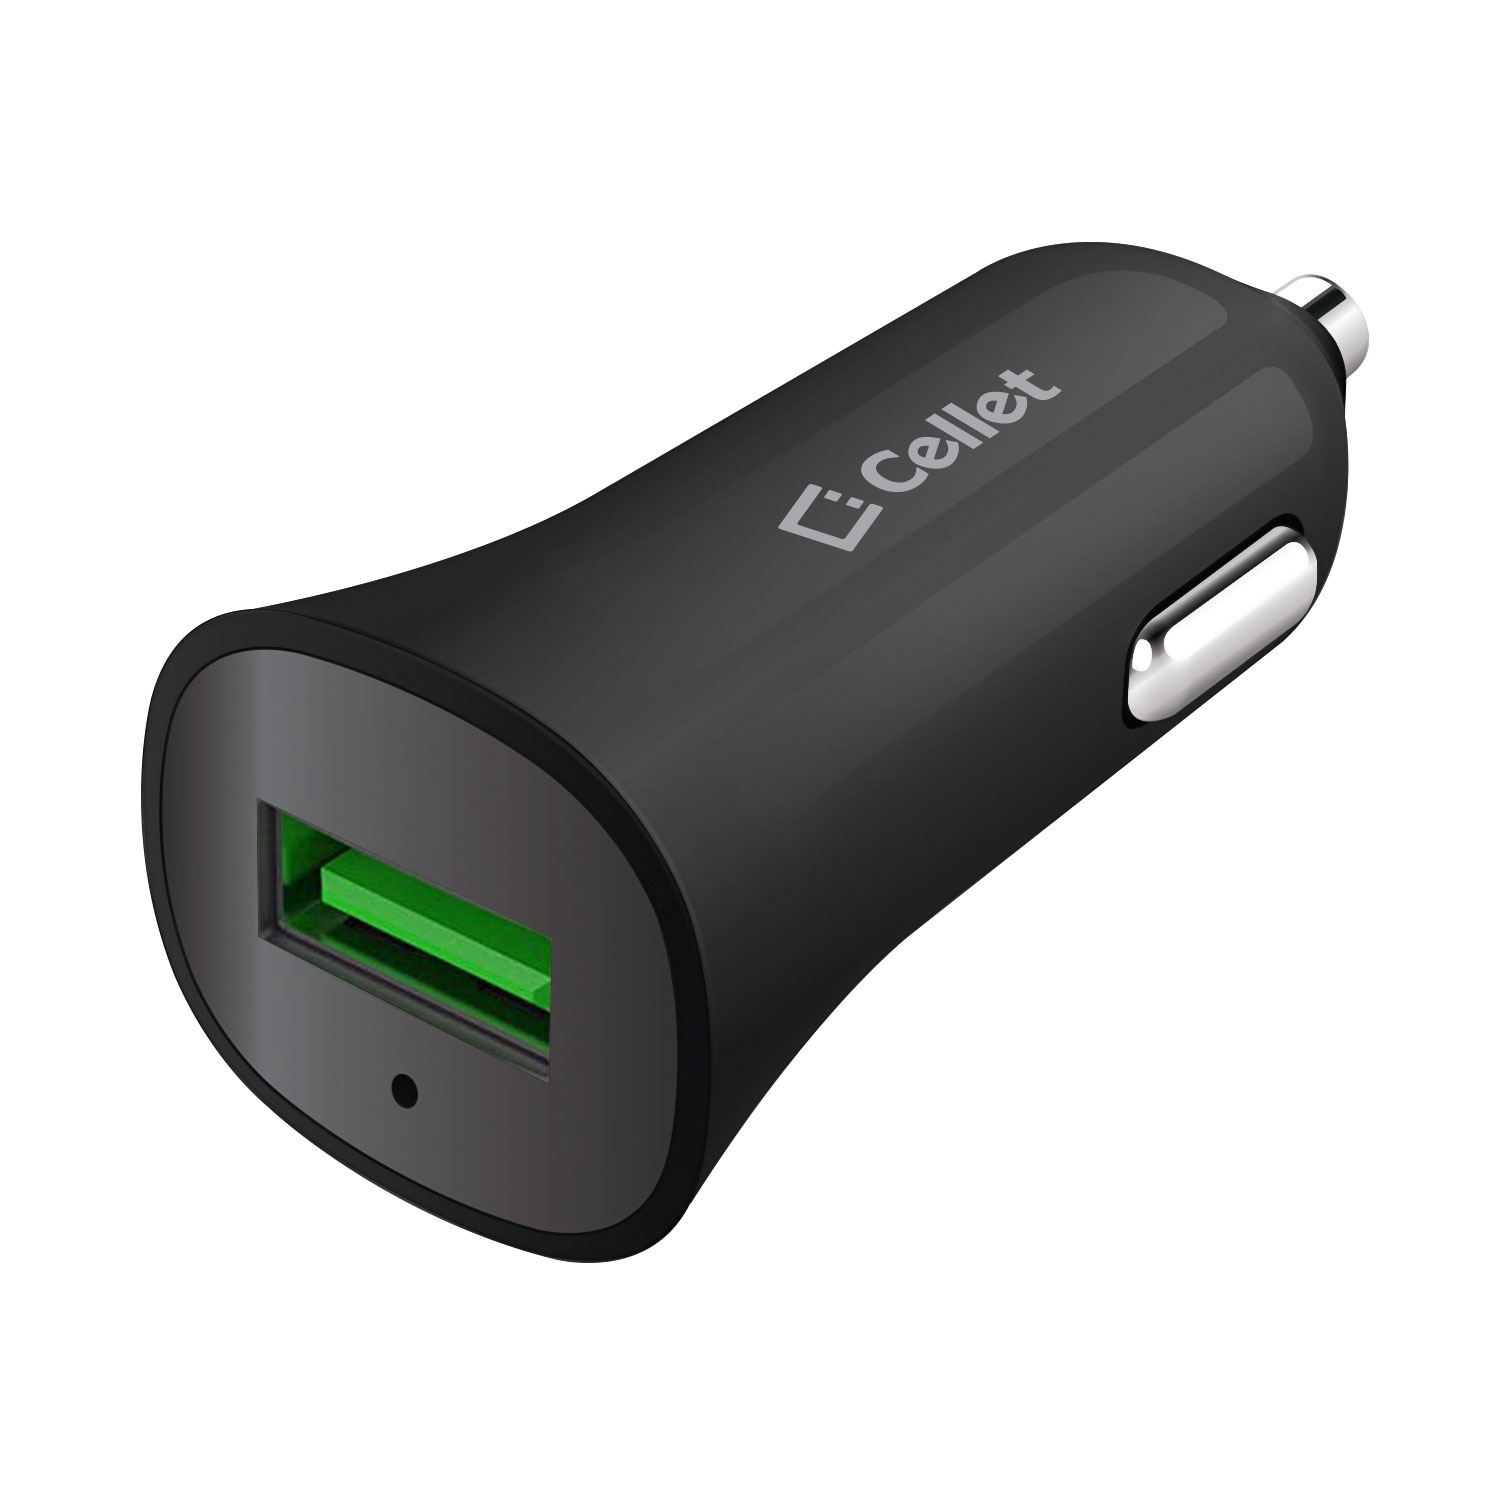 LG Intuition Car Charger Quick Charge 3.0 Black 3.3ft